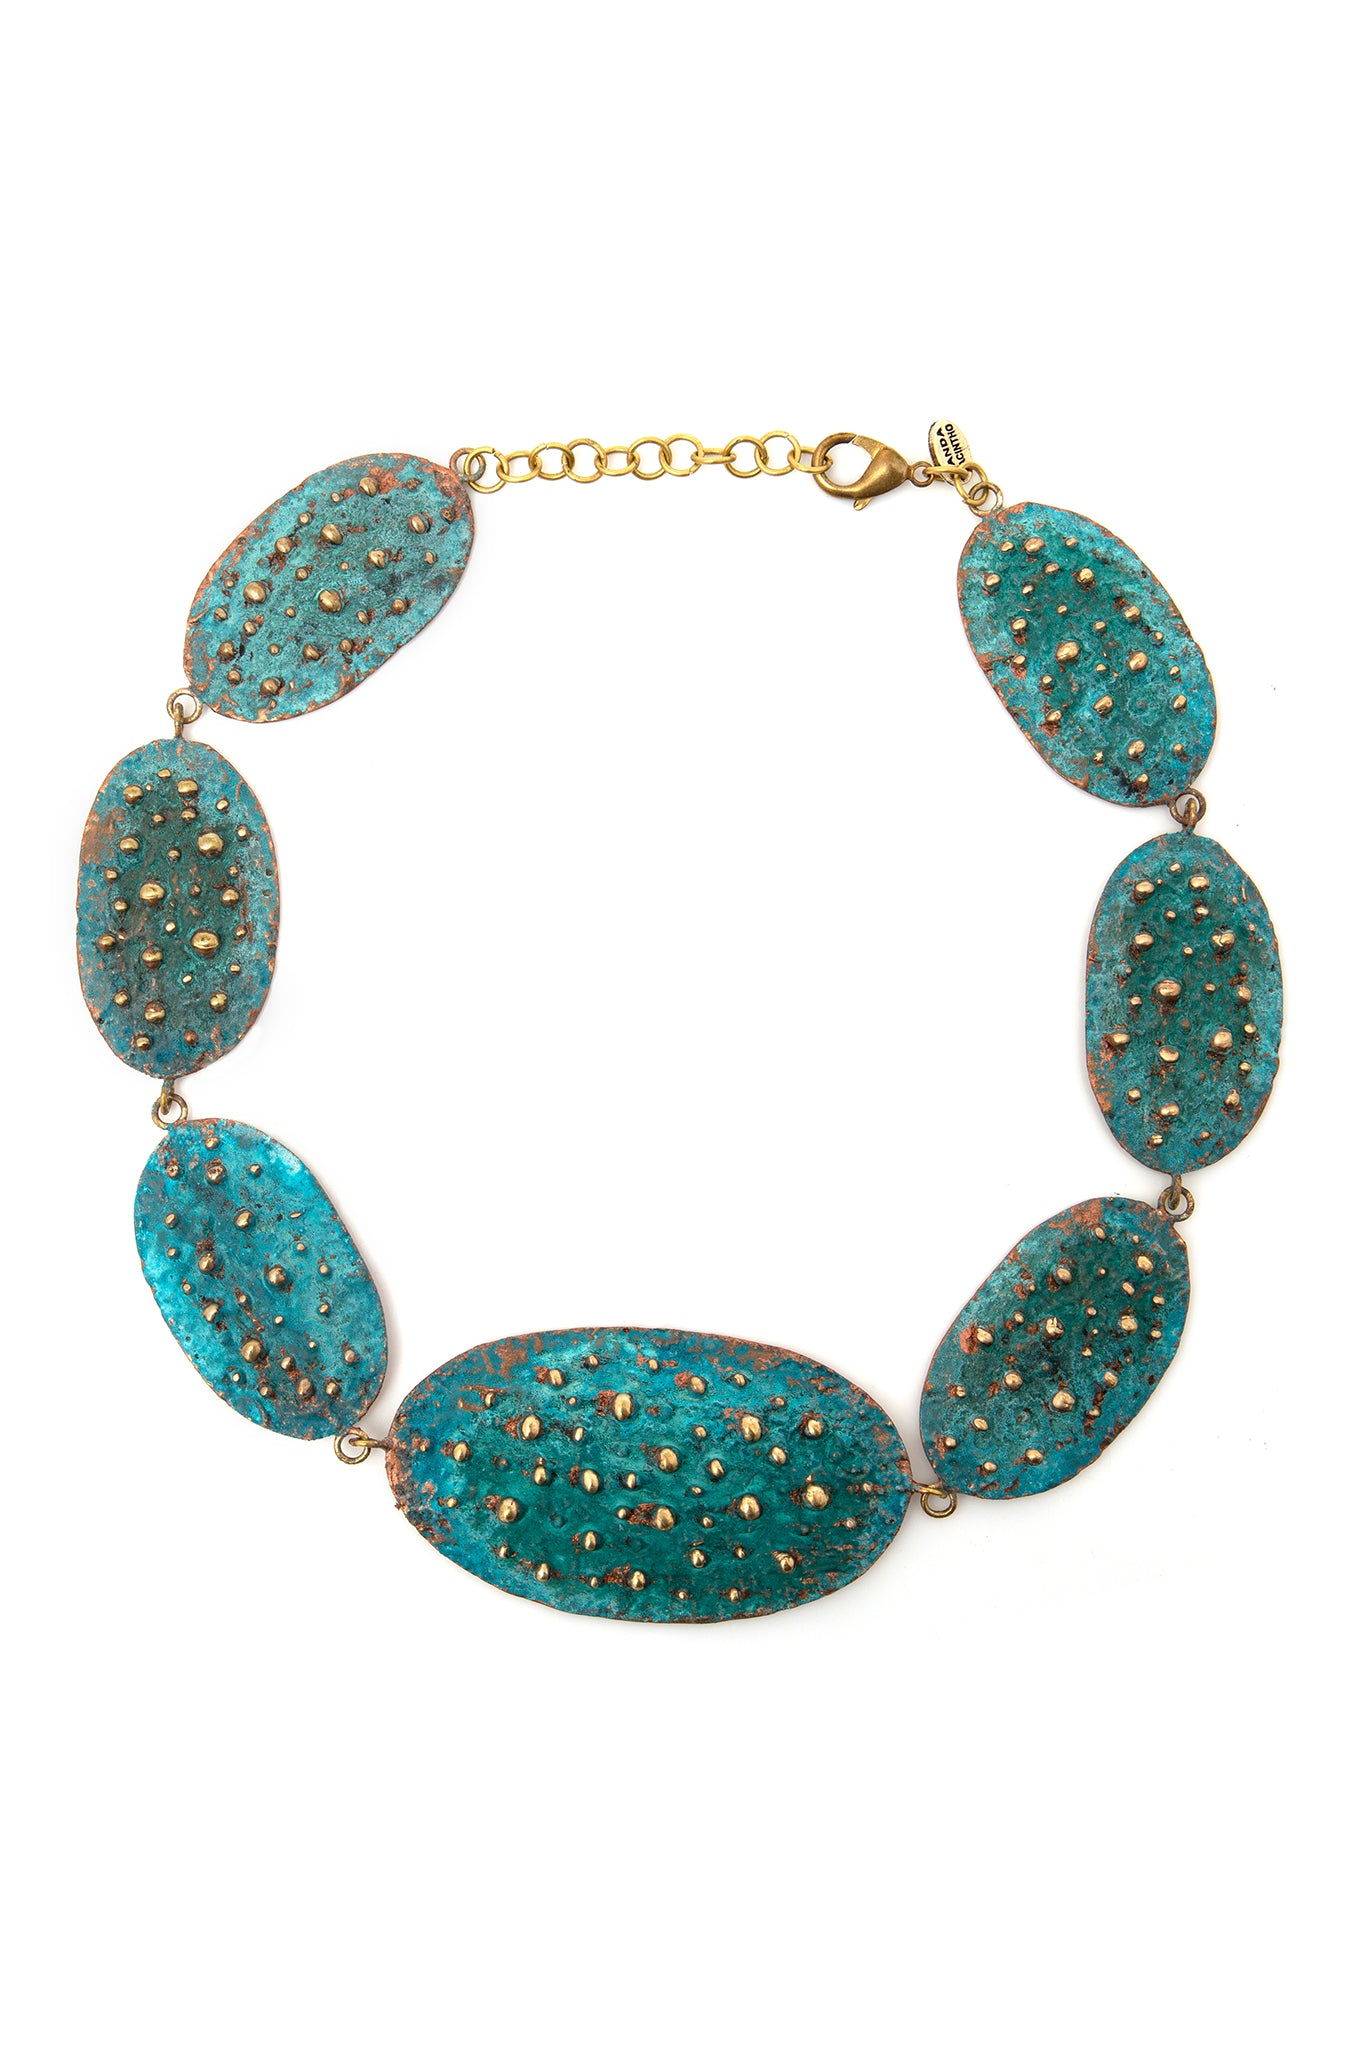 PATINA OVAL BIG NECKLACE